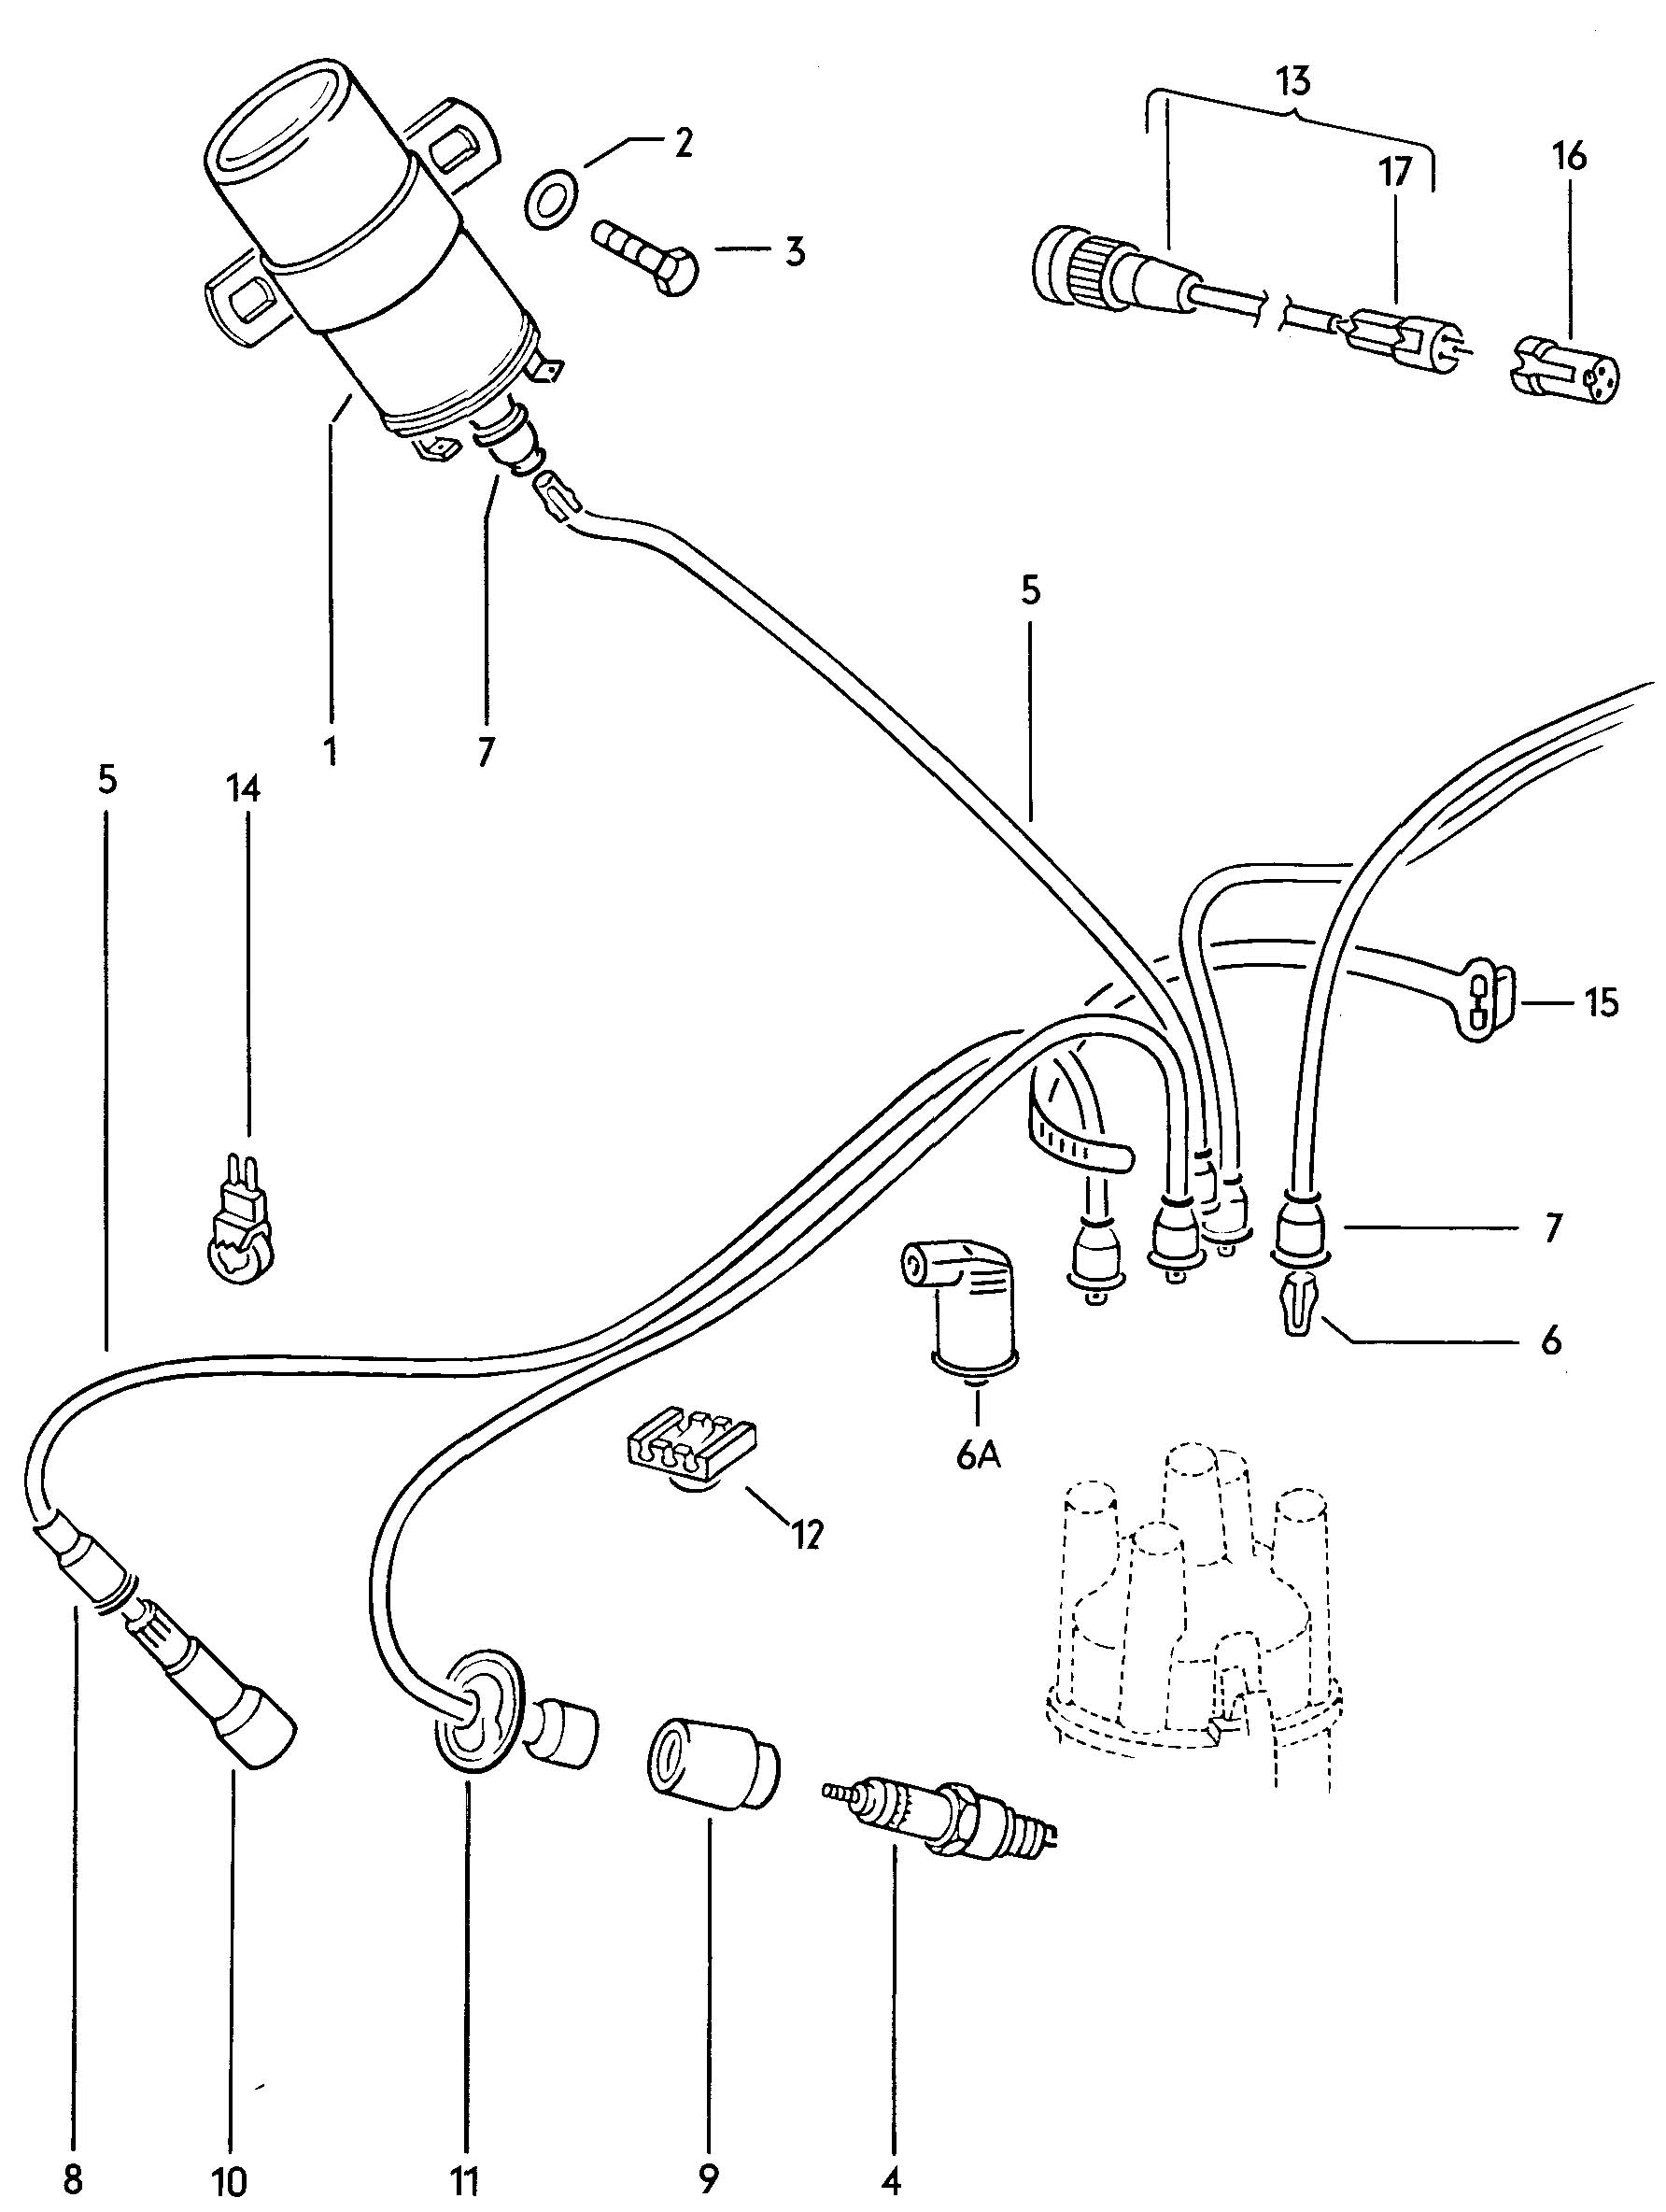 1974 vw beetle wiring diagram